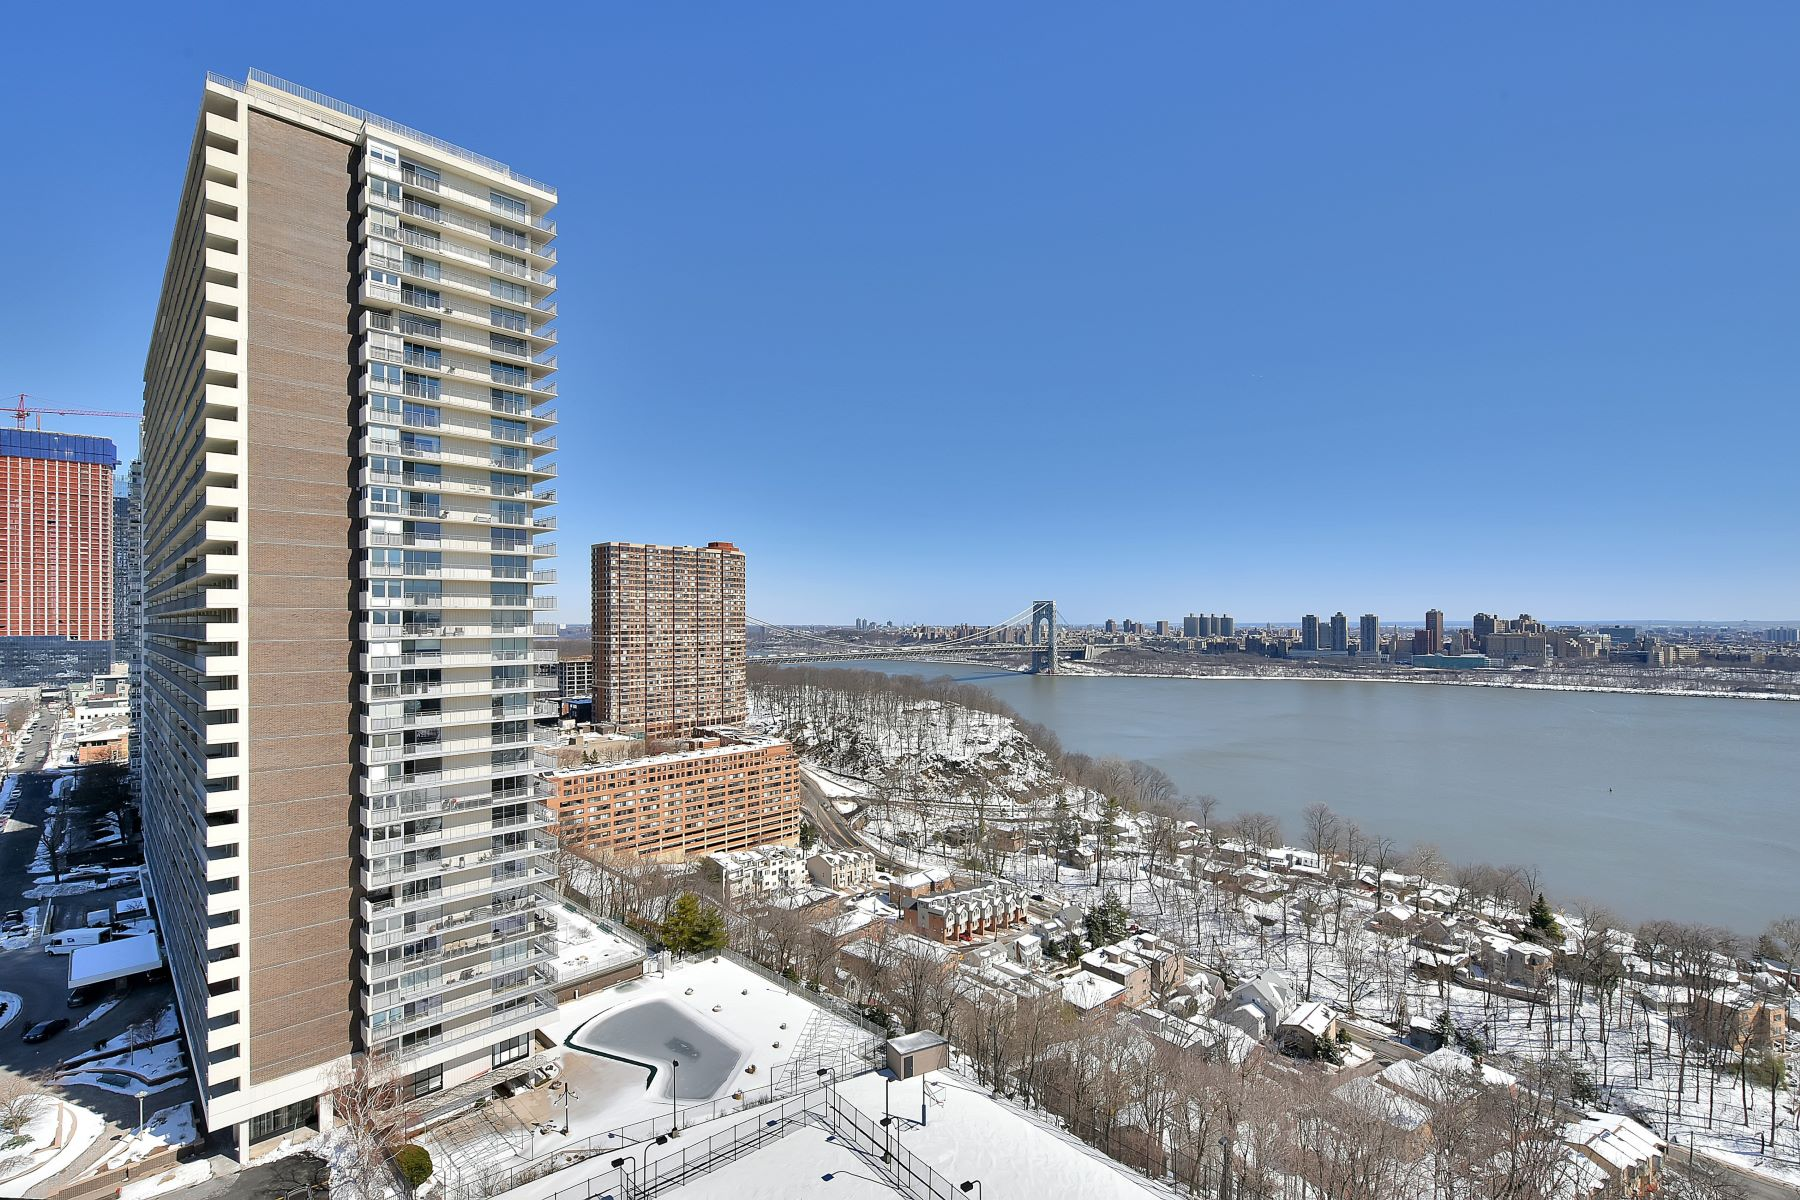 Condominium for Sale at Luxury Living 1512 Palisade Ave 9 N Fort Lee, New Jersey 07024 United States